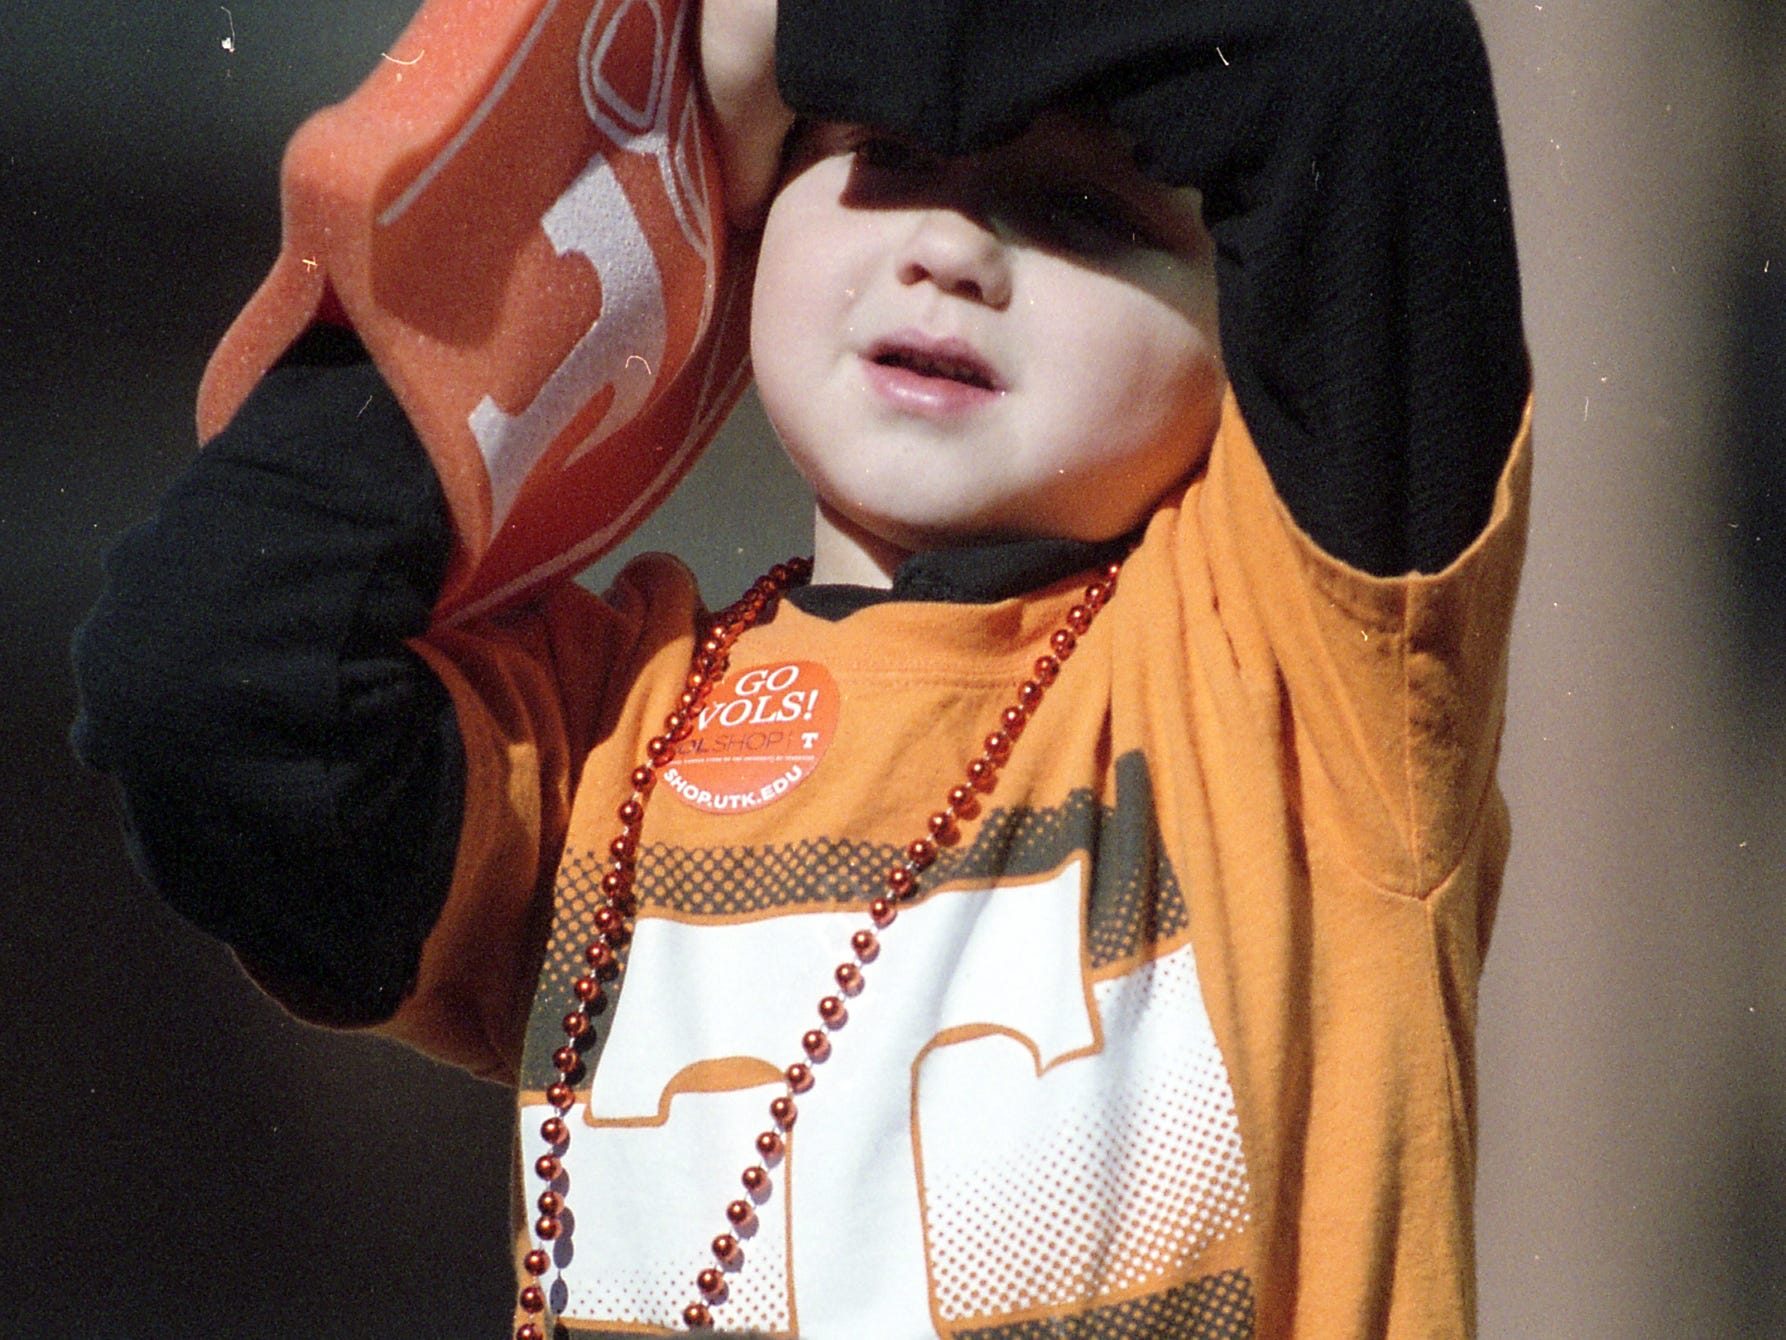 A young Vol fan gets a better view from the shoulders of a loved one during a game between Tennessee and Missouri at Neyland Stadium in Knoxville, Tennessee on Saturday, November 17, 2018.